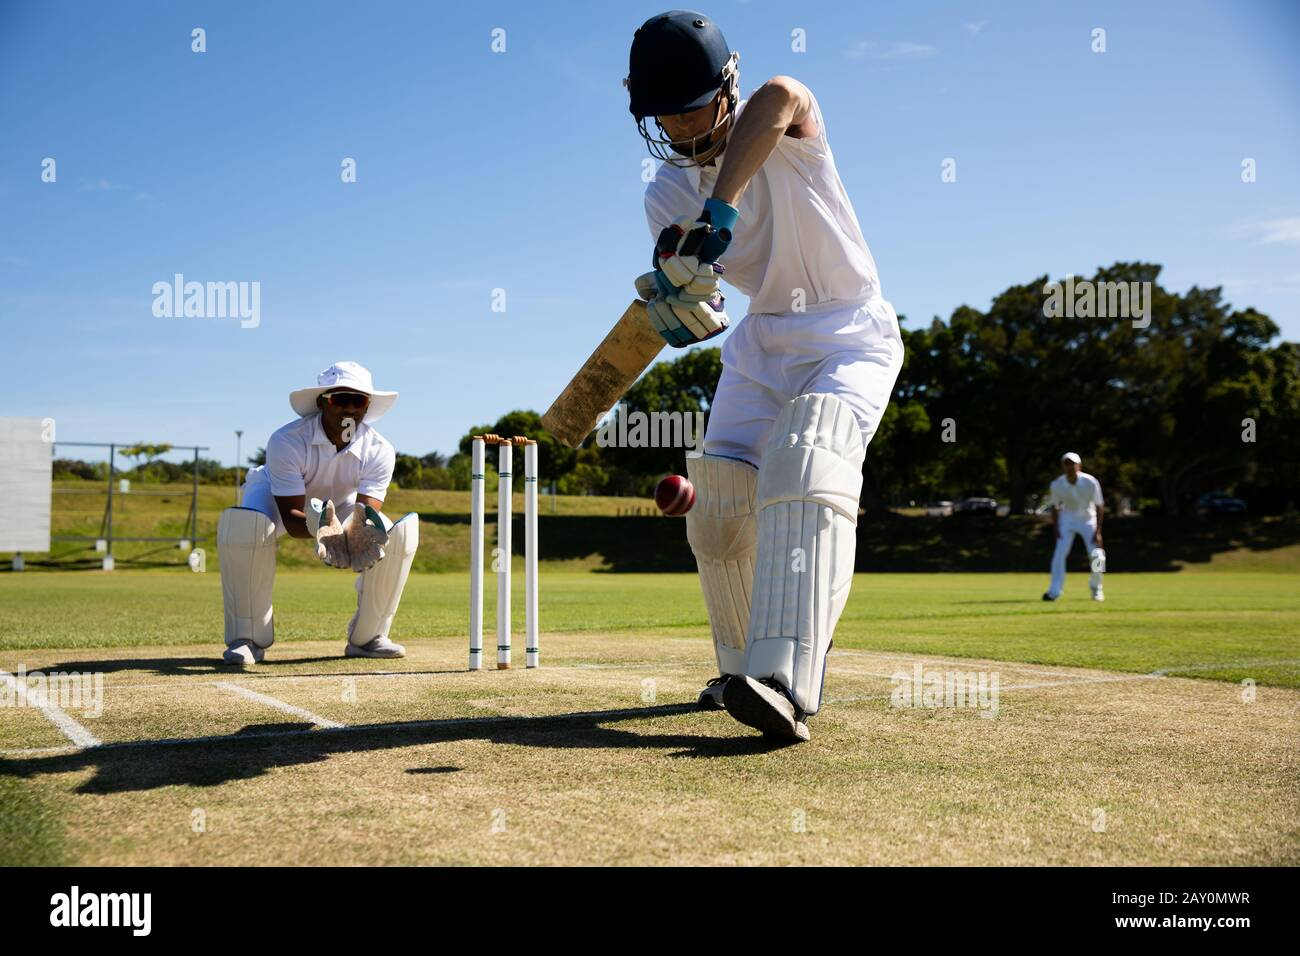 Cricket player shooting in the ball Stock Photo